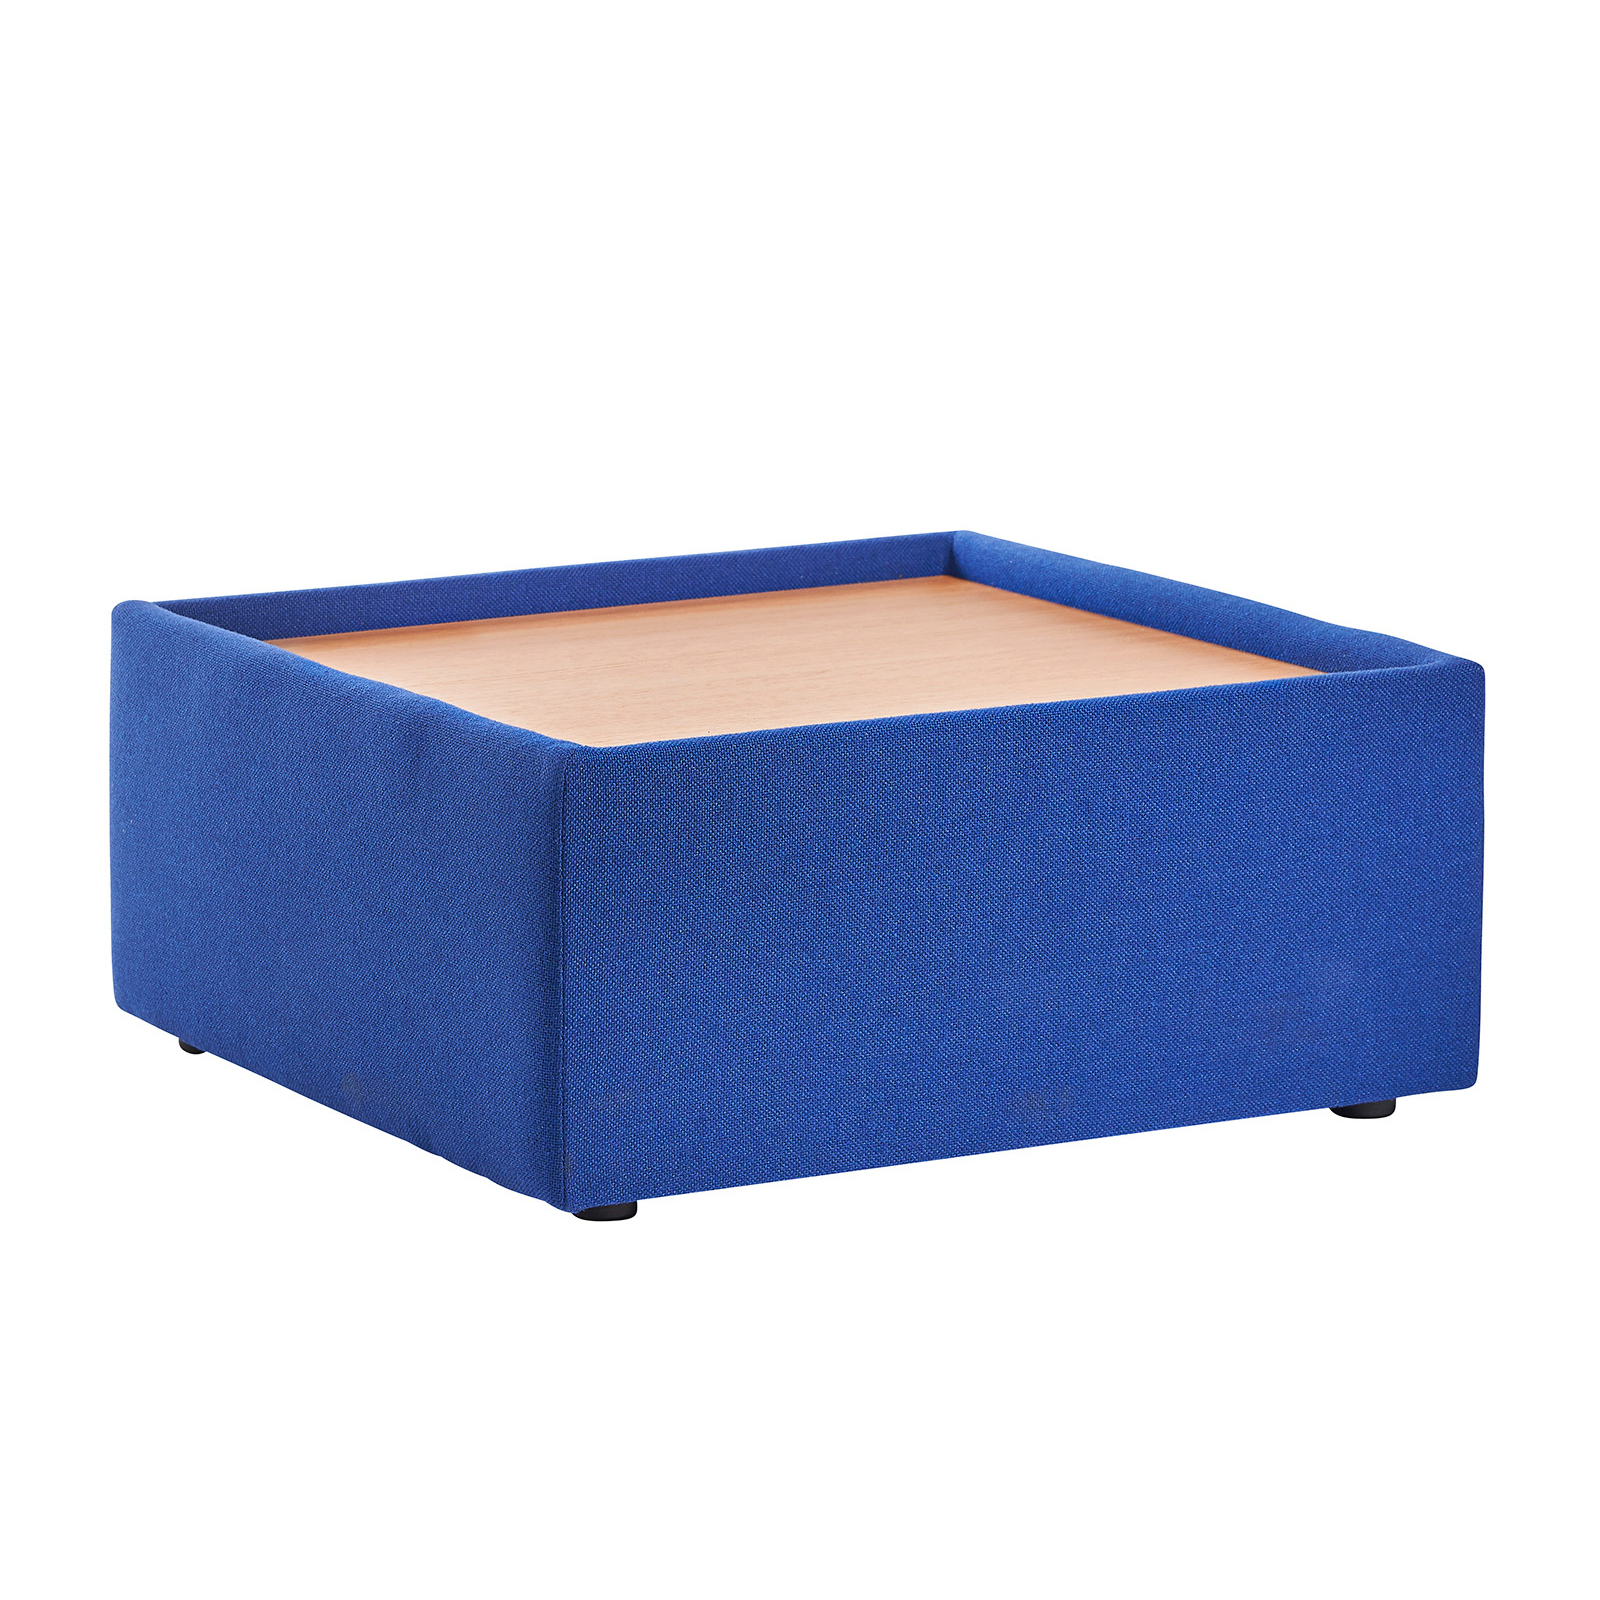 Image for Alto modular reception seating wooden table - blue